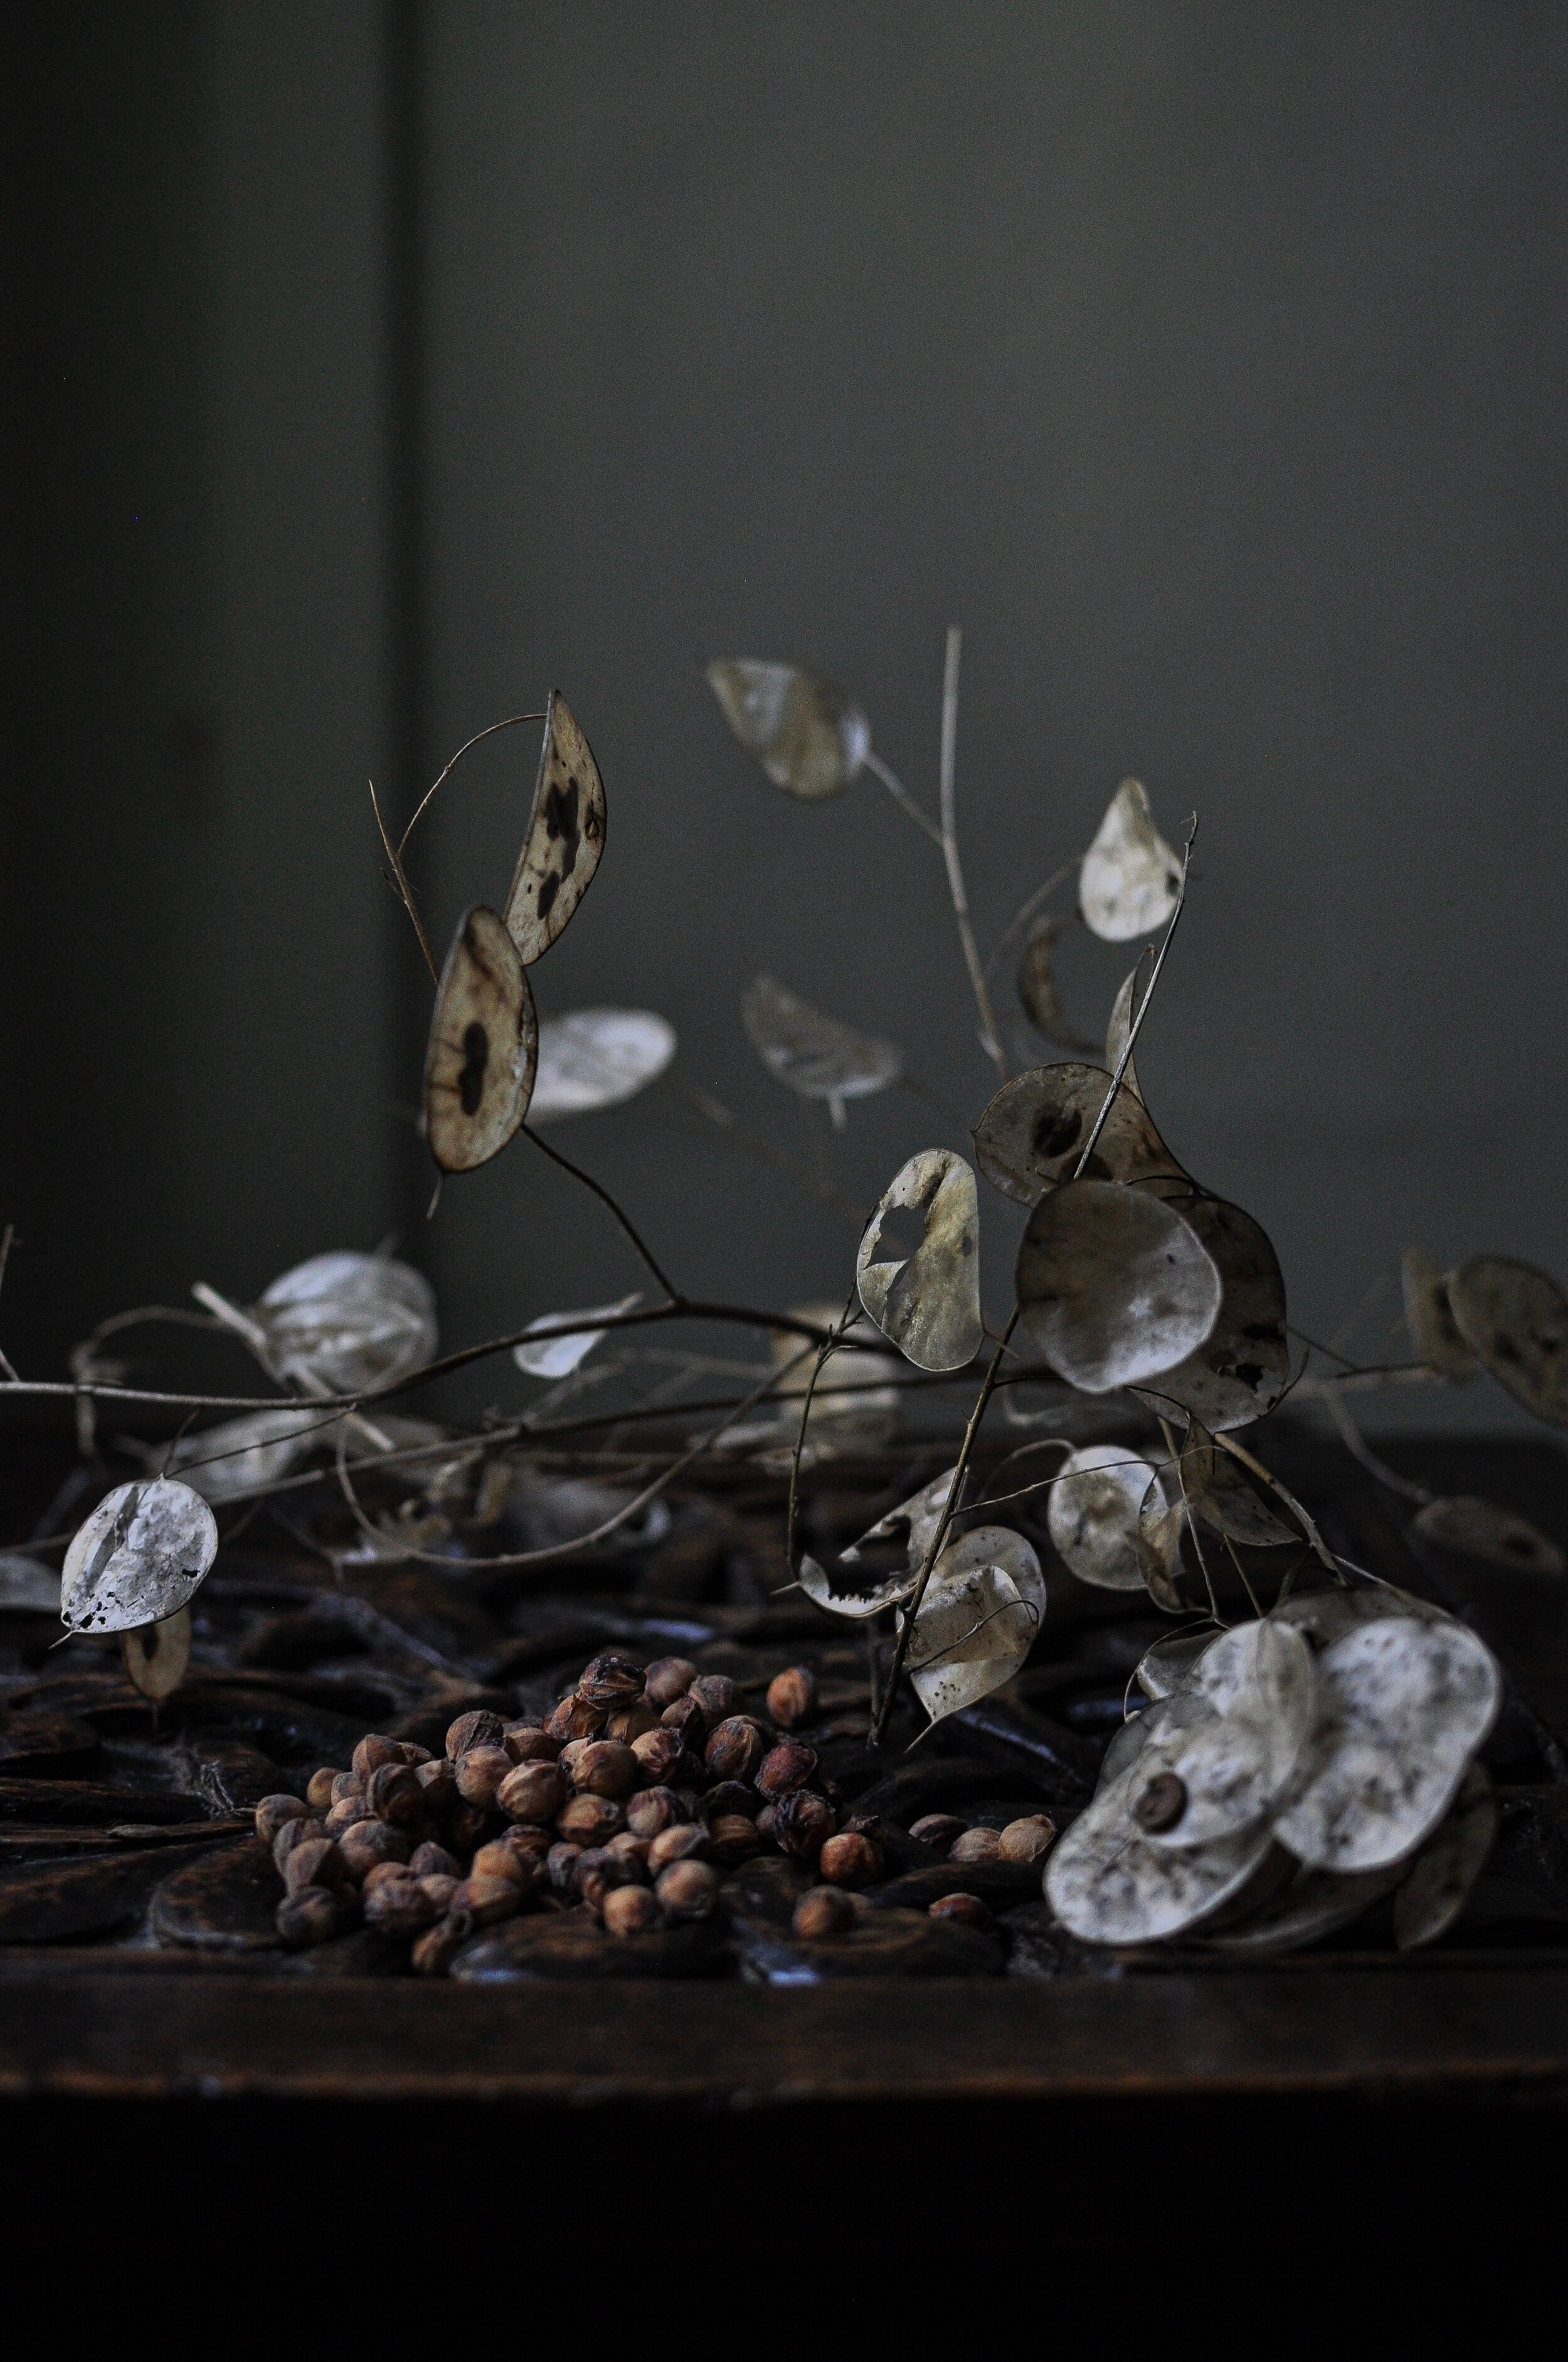 Lunaria / Honesty seed pods